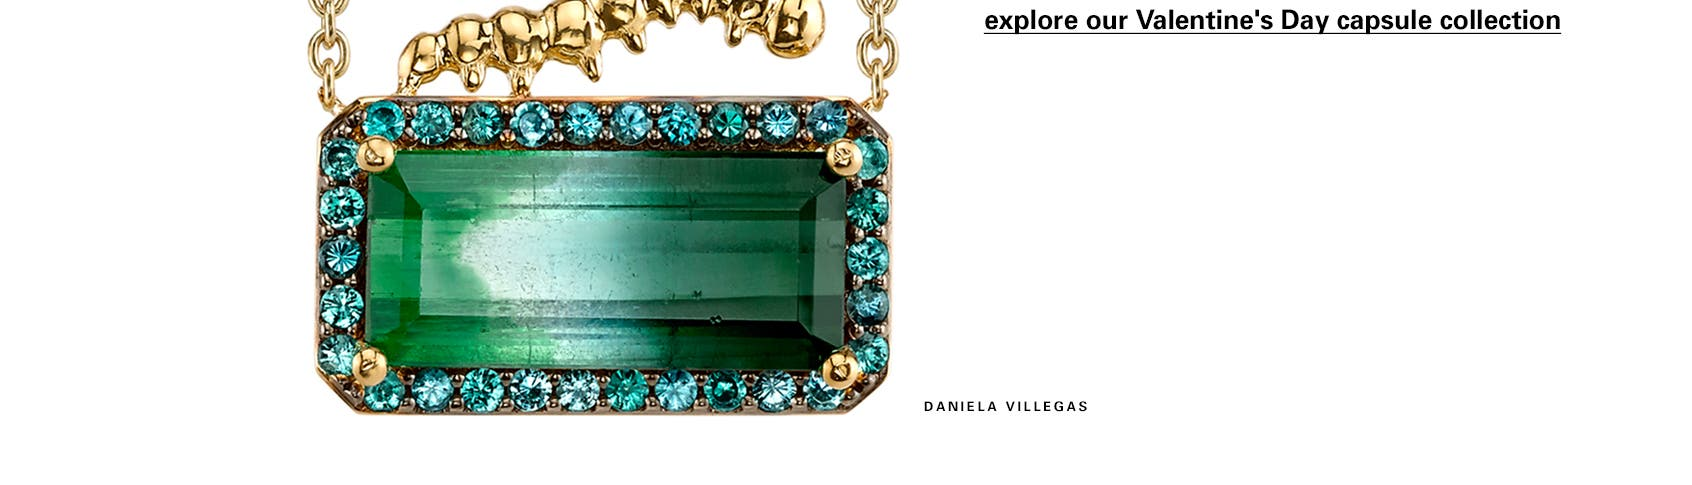 Explore our Valentine's Day capsule collection, featuring jewelry from Daniela Villegas and more.